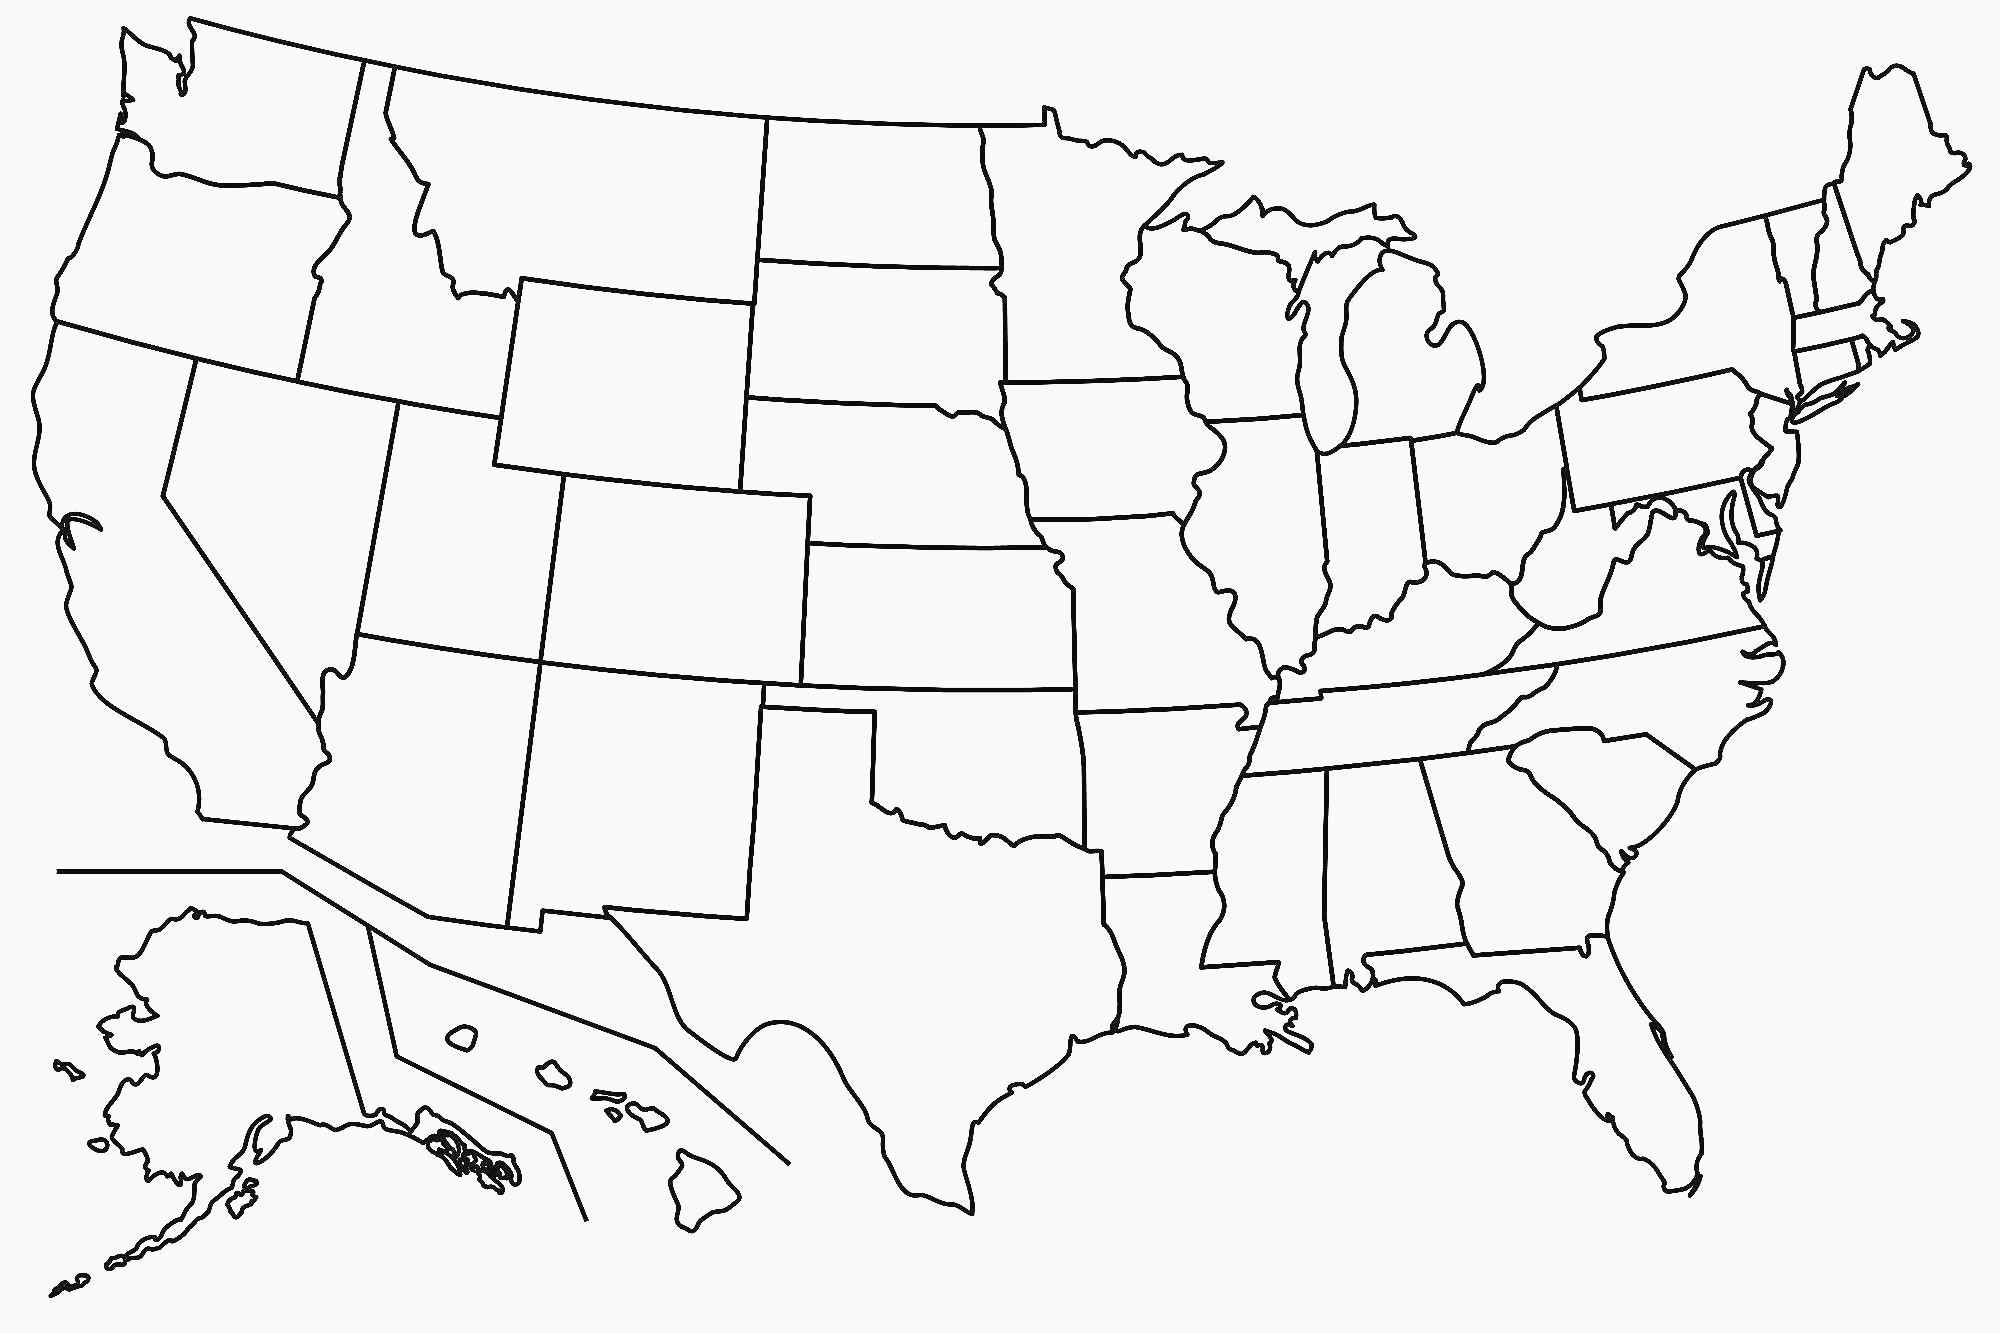 United States Map Blank Template Fresh Map Usa States Free Printable - Free Printable Usa Map